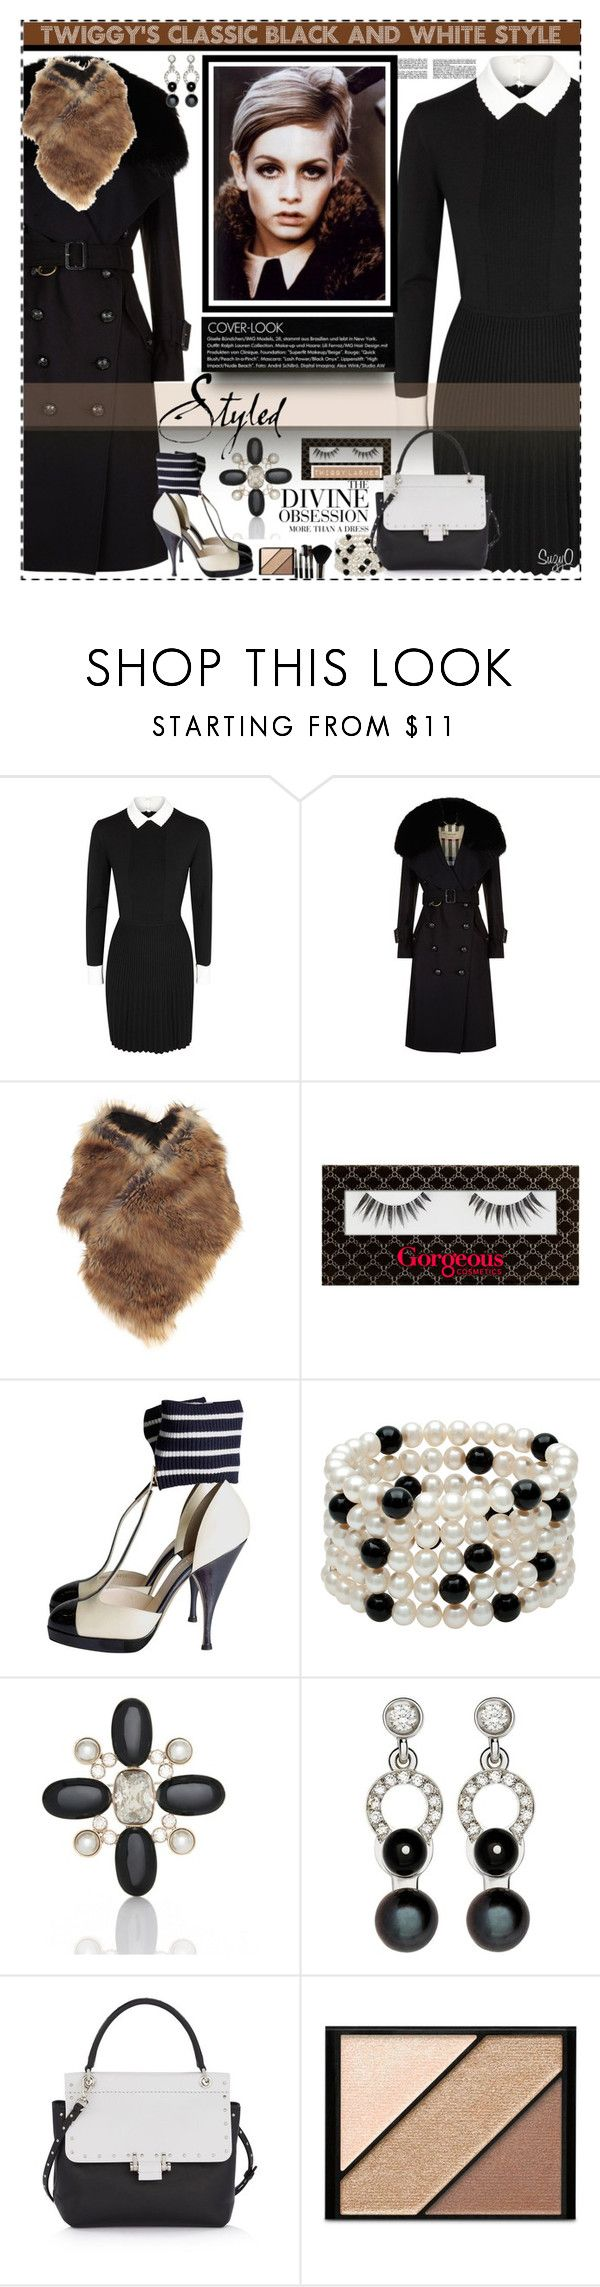 """""""TWIGGY:  Classic Winter Black Style"""" by polyvore-suzyq ❤ liked on Polyvore featuring Tory Burch, Burberry, Dries Van Noten, Gorgeous Cosmetics, Chanel, St. John, Nathalie Jean, Lanvin, Vera Wang and Elizabeth Arden"""